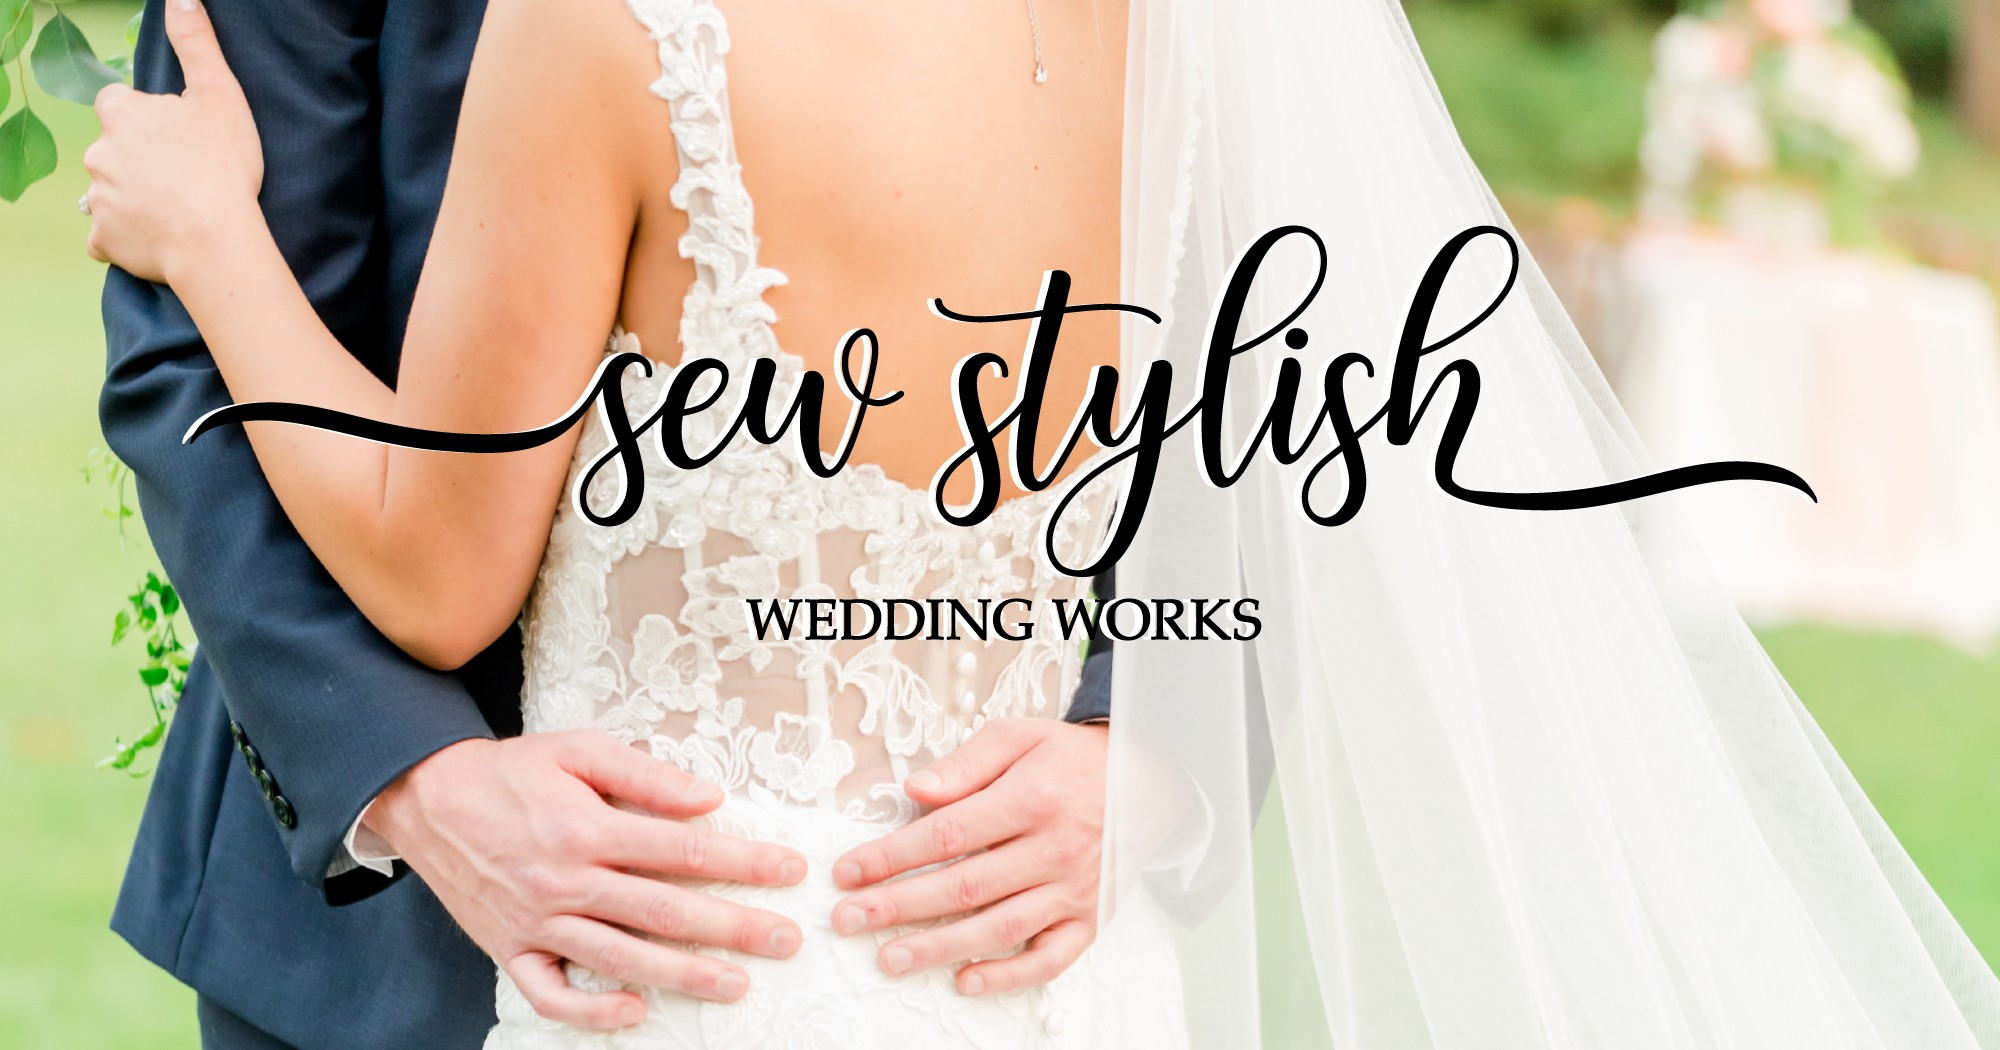 Sew Stylish Wedding Works